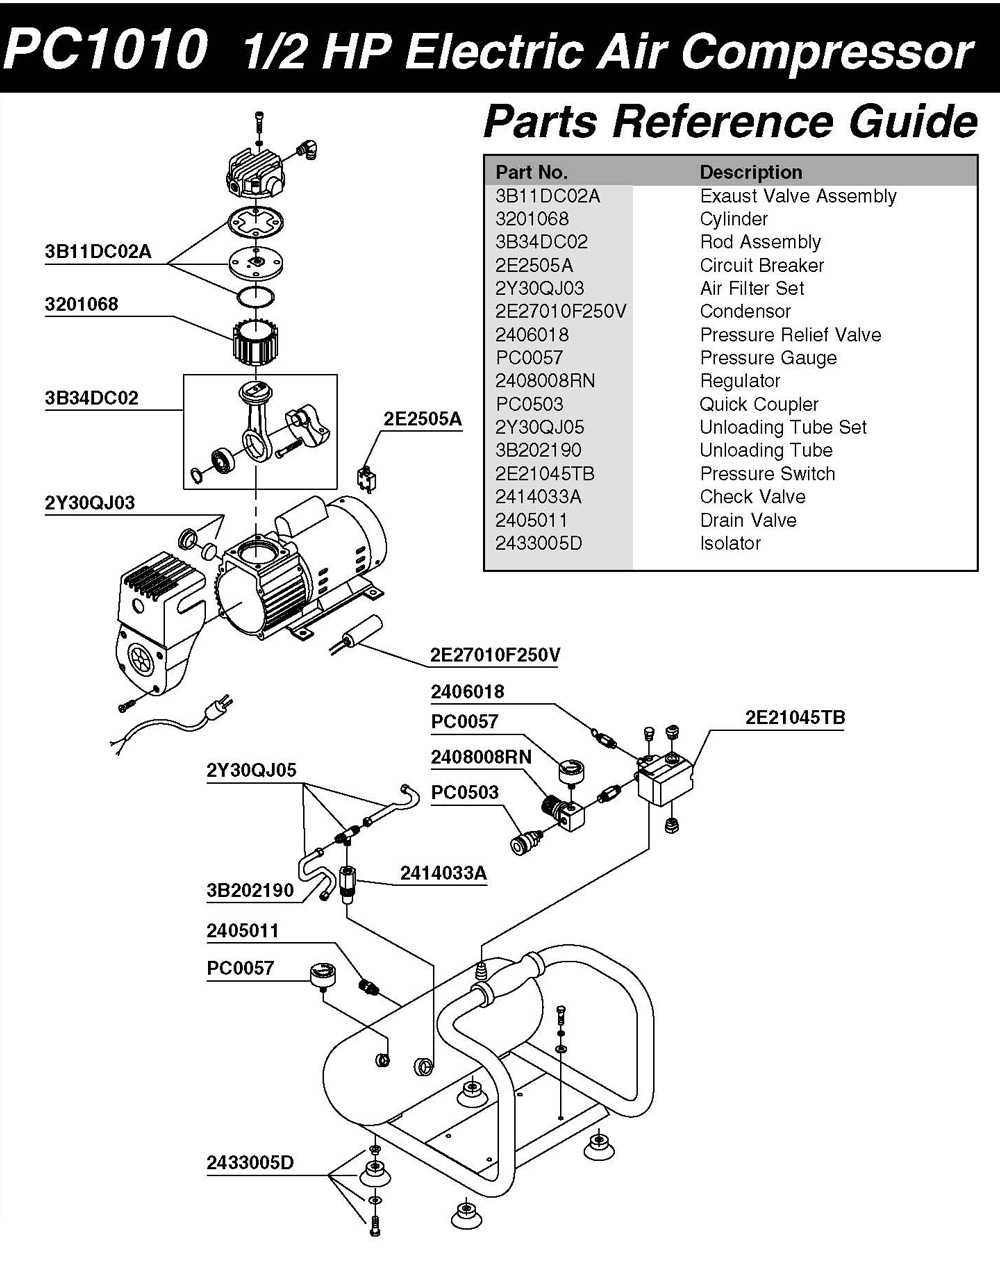 Isuzu Trooper Engine Diagram On Isuzu Trooper 3 5 Engine Diagram